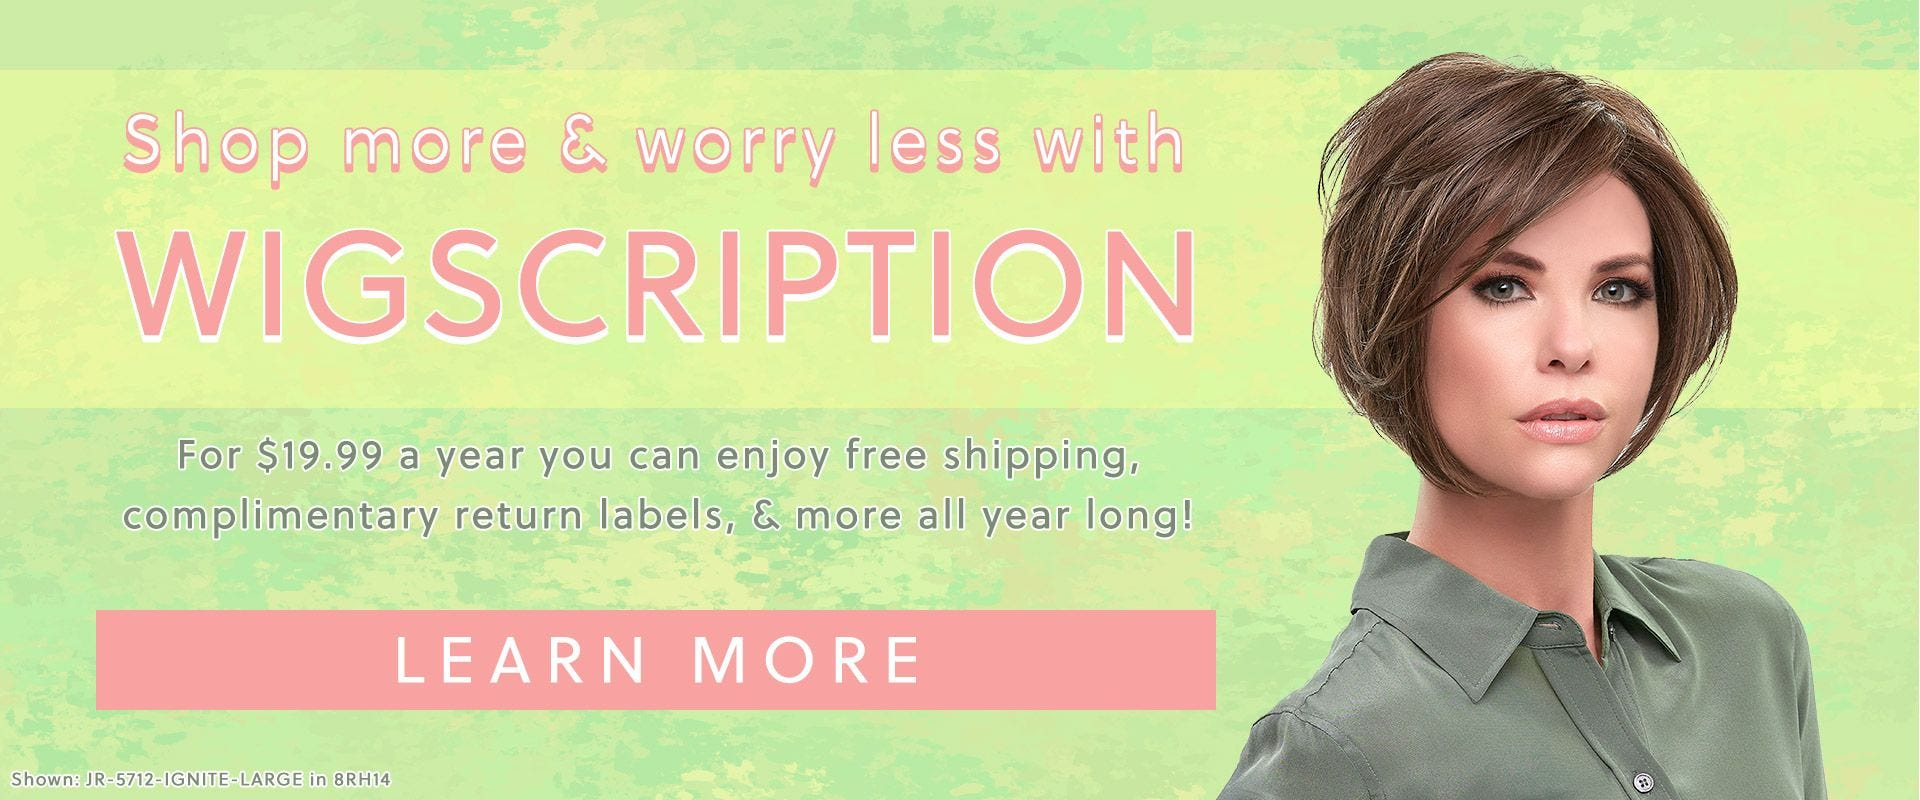 The Best Way To Shop For Wigs Online - Wigscription!